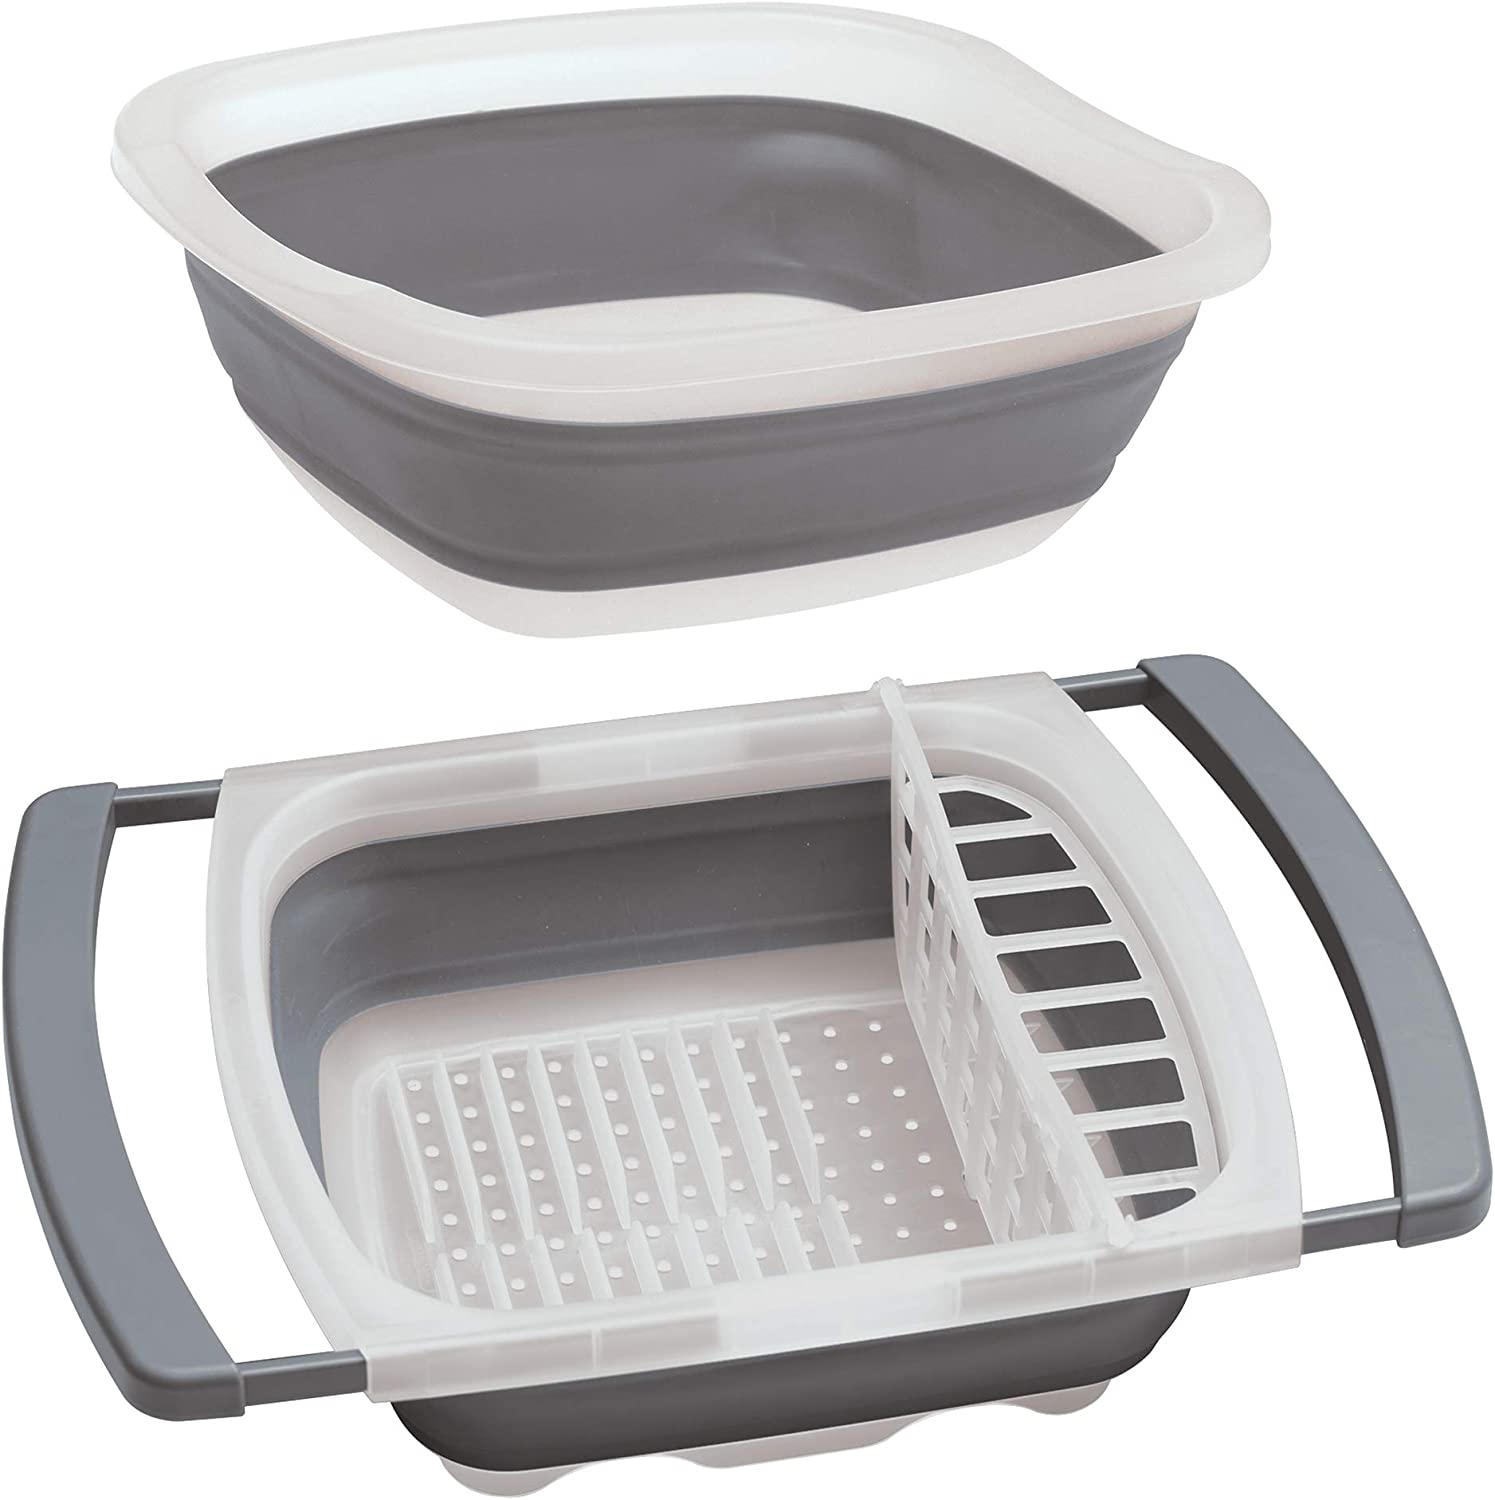 Prepworks by Progressive Collapsible Pop Up Portable Dish Tub and Over-The-Sink Dish Drainer – 2 Piece Collapsible Set